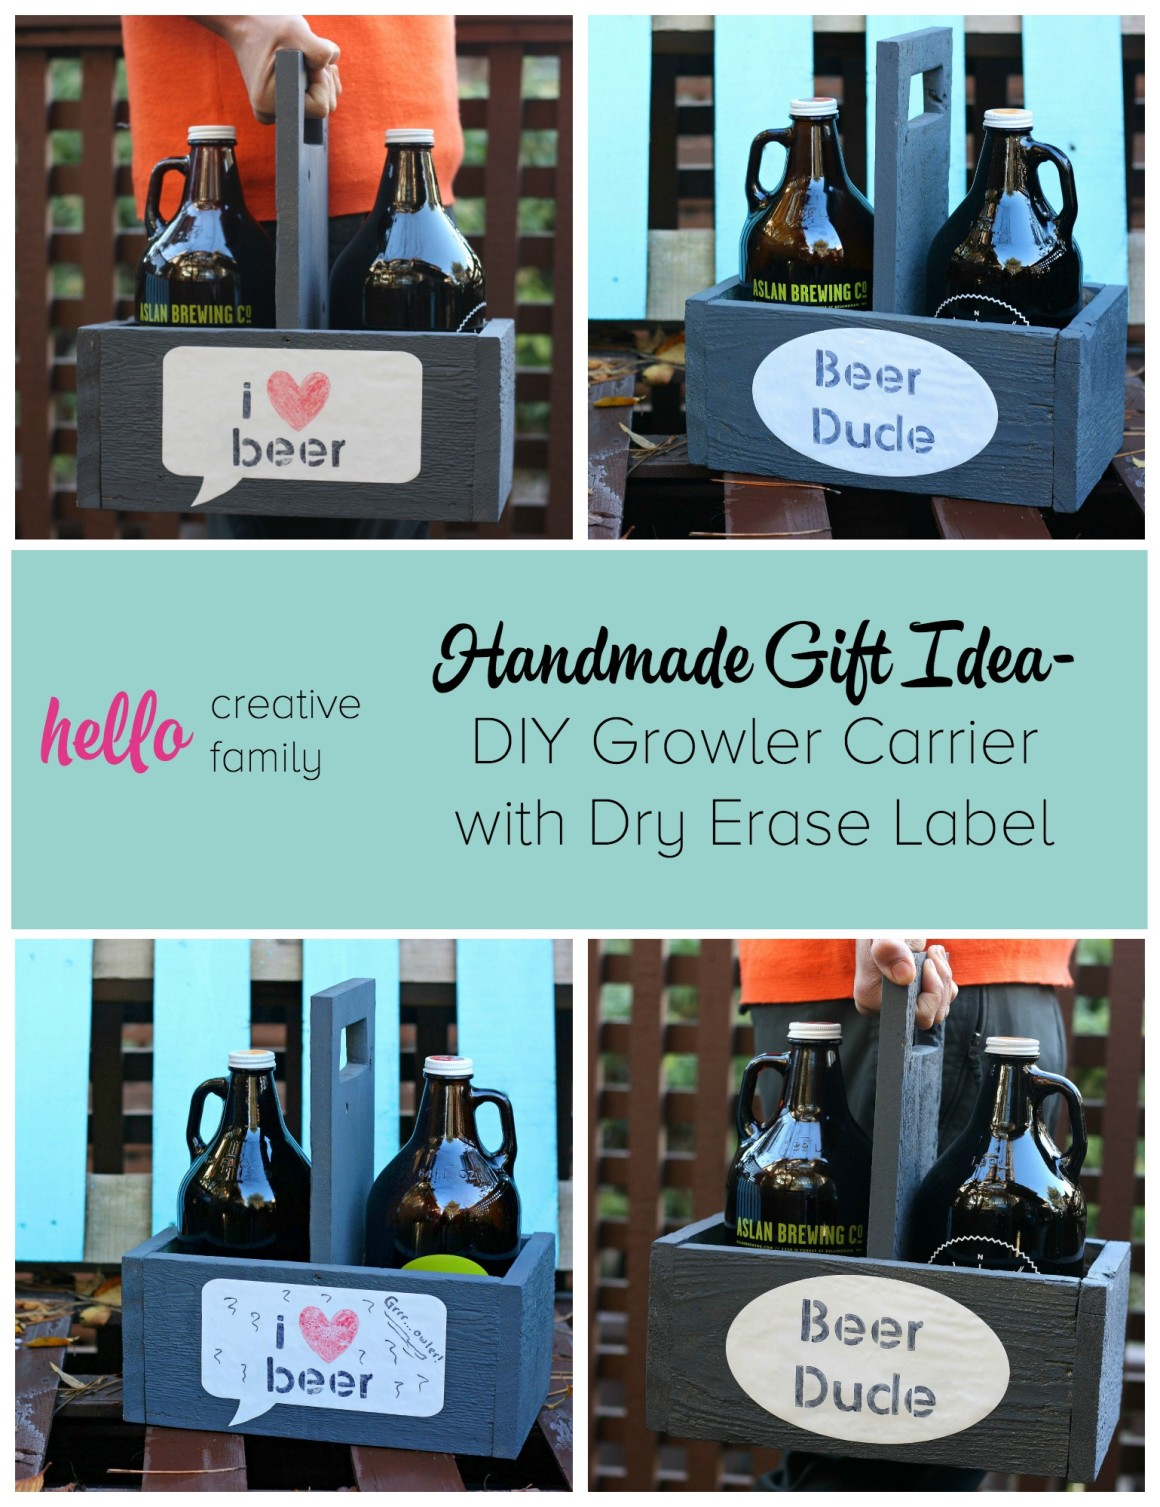 Learn how to make a DIY Growler Carrier out of upcycled wood. This project makes a great gift idea for beer drinkers and craft beer enthusiasts.